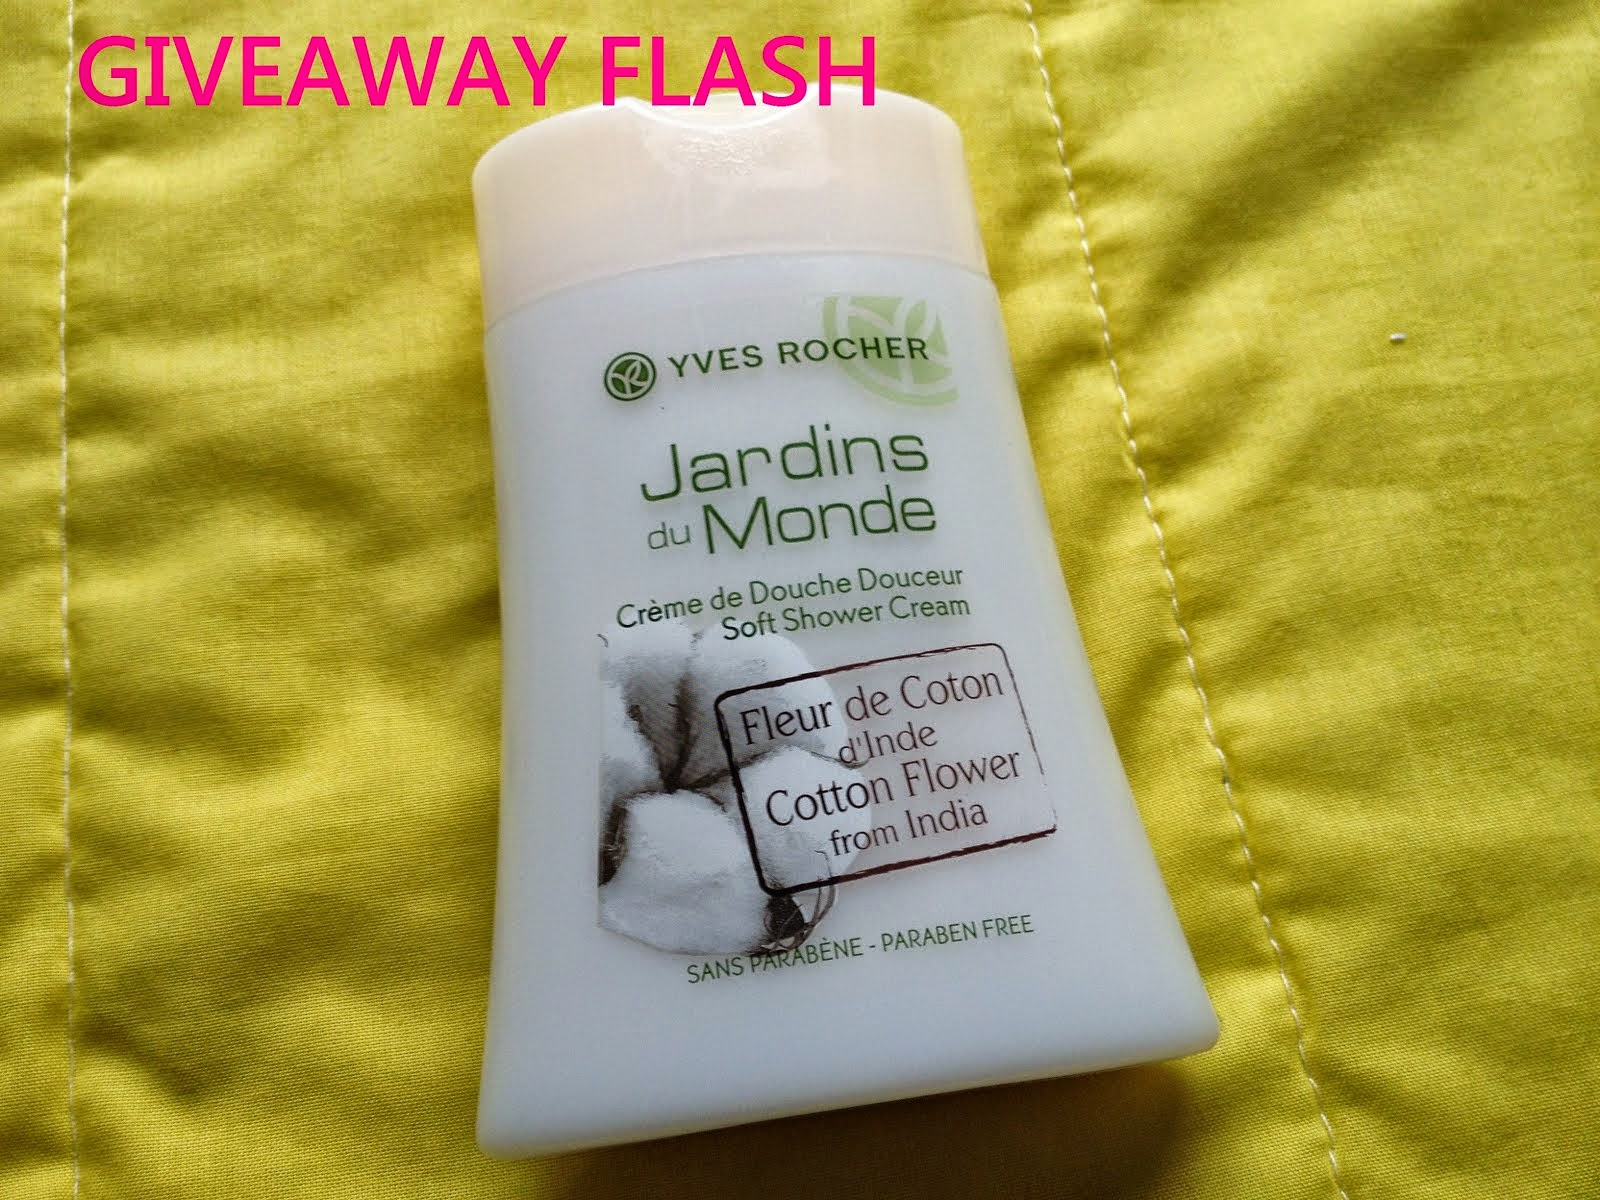 GIVEAWAY FLASH